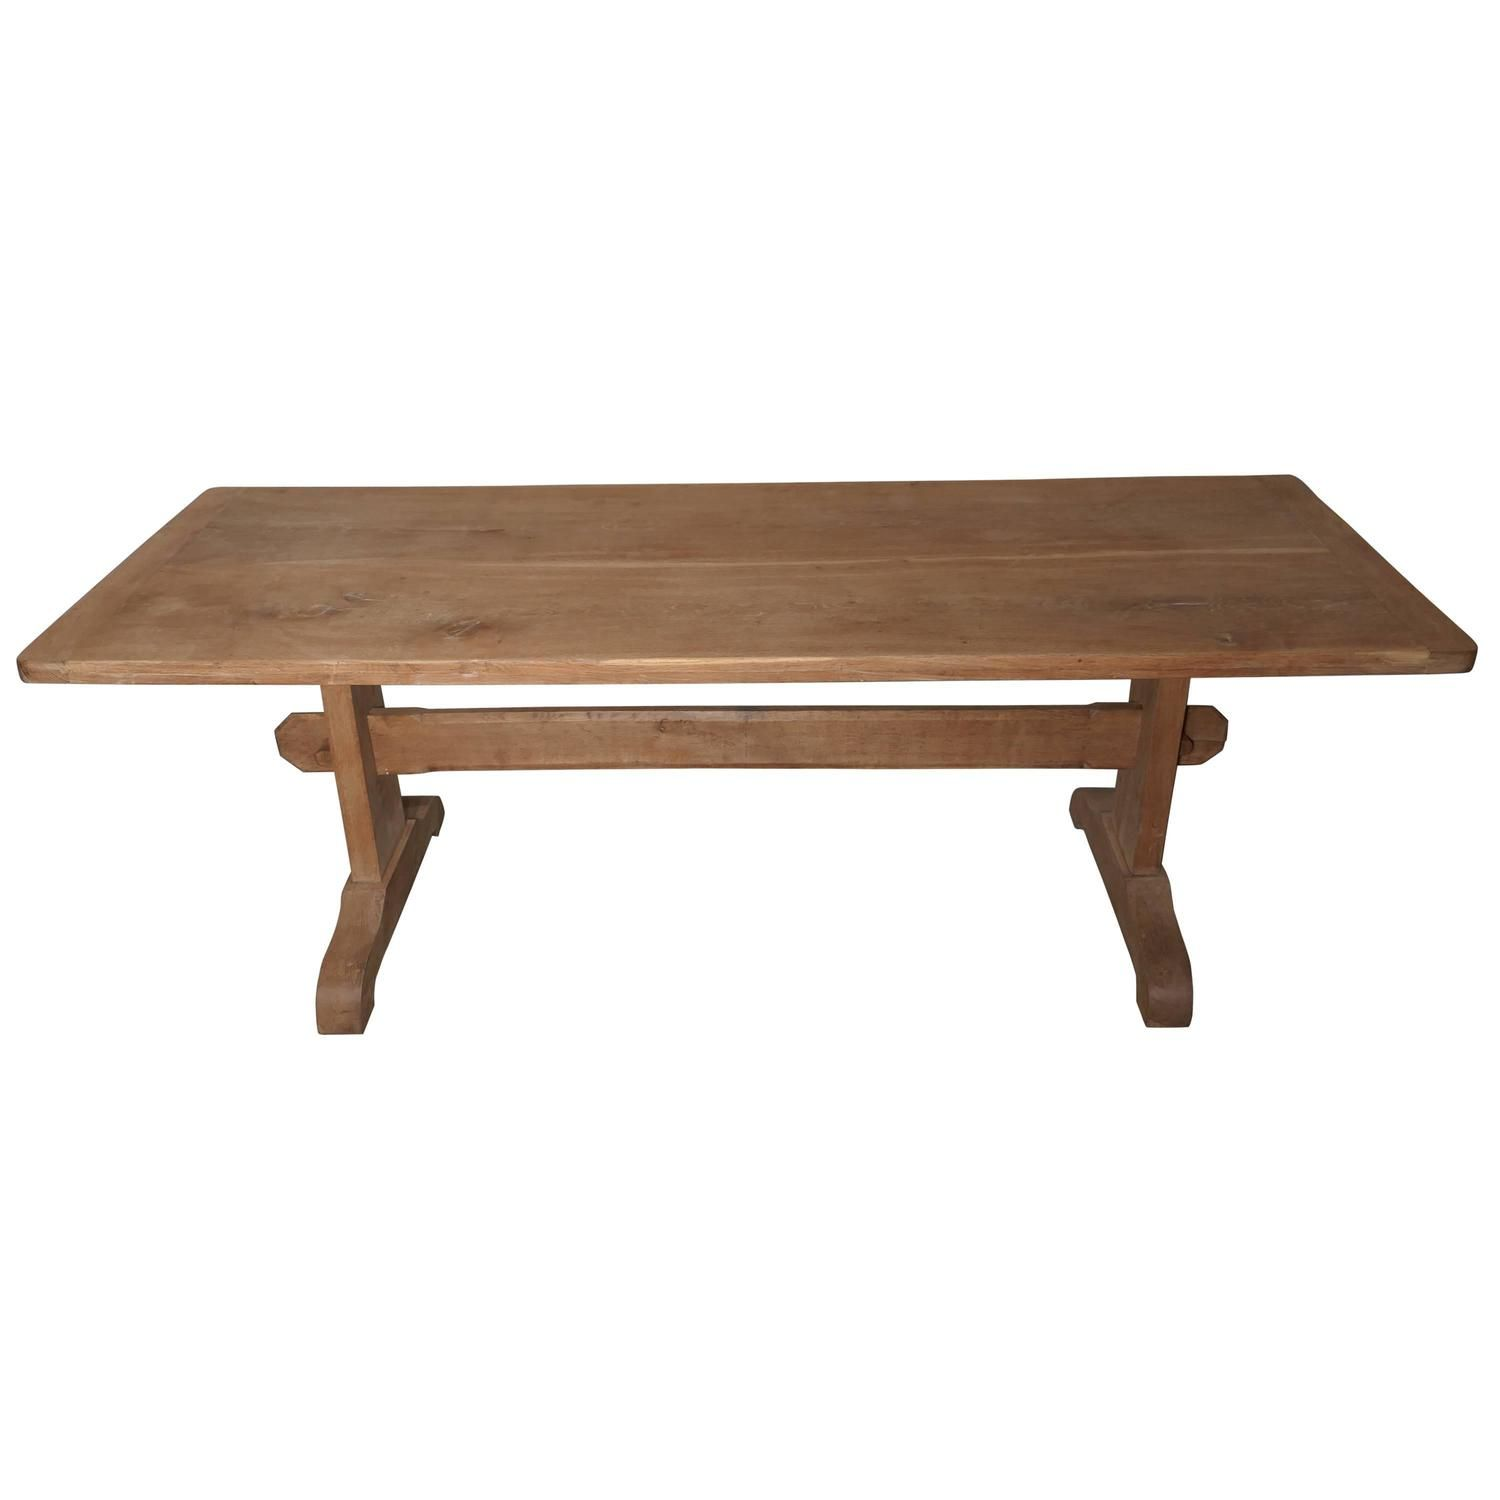 19th Century Arts and Crafts Bleached Oak Refectory Table